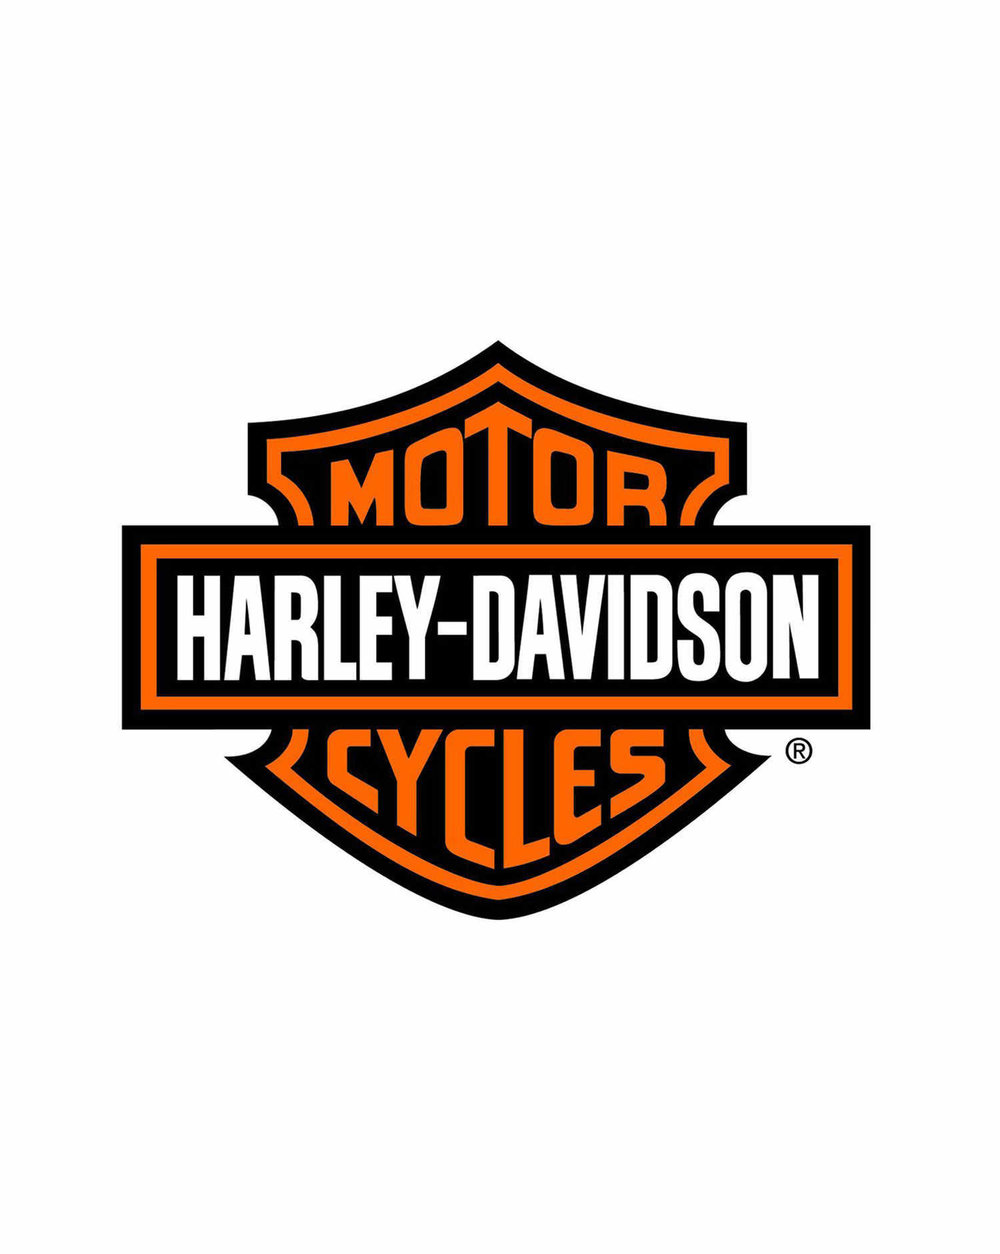 "HARLEY-DAVIDSON                      Normal   0           false   false   false     EN-US   JA   X-NONE                                                                                                                                                                                                                                                                                                                                                                                                                                                                                                                                                                                                                                                                                                                                                                                                                                                                                    /* Style Definitions */ table.MsoNormalTable 	{mso-style-name:""Table Normal""; 	mso-tstyle-rowband-size:0; 	mso-tstyle-colband-size:0; 	mso-style-noshow:yes; 	mso-style-priority:99; 	mso-style-parent:""""; 	mso-padding-alt:0cm 5.4pt 0cm 5.4pt; 	mso-para-margin:0cm; 	mso-para-margin-bottom:.0001pt; 	mso-pagination:widow-orphan; 	font-size:12.0pt; 	font-family:Cambria; 	mso-ascii-font-family:Cambria; 	mso-ascii-theme-font:minor-latin; 	mso-hansi-font-family:Cambria; 	mso-hansi-theme-font:minor-latin; 	mso-ansi-language:EN-US; 	mso-fareast-language:EN-US;}     Mark was commissioned by HARLEY-DAVIDSON to design a collection of men's and women's riding apparel to coordinate with the company's brand image. Specifically designed for the riding enthusiast, the program sold by over 600 Harley Davidson dealerships worldwide.            0   0   1   47   269   karen@markeiseninc.com   2   1   315   14.0                      Normal   0           false   false   false     EN-US   JA   X-NONE                                                                                                                                                                                                                                                                                                                                                                              /* Style Definitions */ table.MsoNormalTable 	{mso-style-name:""Table Normal""; 	mso-tstyle-rowband-size:0; 	mso-tstyle-colband-size:0; 	mso-style-noshow:yes; 	mso-style-priority:99; 	mso-style-parent:""""; 	mso-padding-alt:0cm 5.4pt 0cm 5.4pt; 	mso-para-margin:0cm; 	mso-para-margin-bottom:.0001pt; 	mso-pagination:widow-orphan; 	font-size:12.0pt; 	font-family:Cambria; 	mso-ascii-font-family:Cambria; 	mso-ascii-theme-font:minor-latin; 	mso-hansi-font-family:Cambria; 	mso-hansi-theme-font:minor-latin; 	mso-ansi-language:EN-US;}"